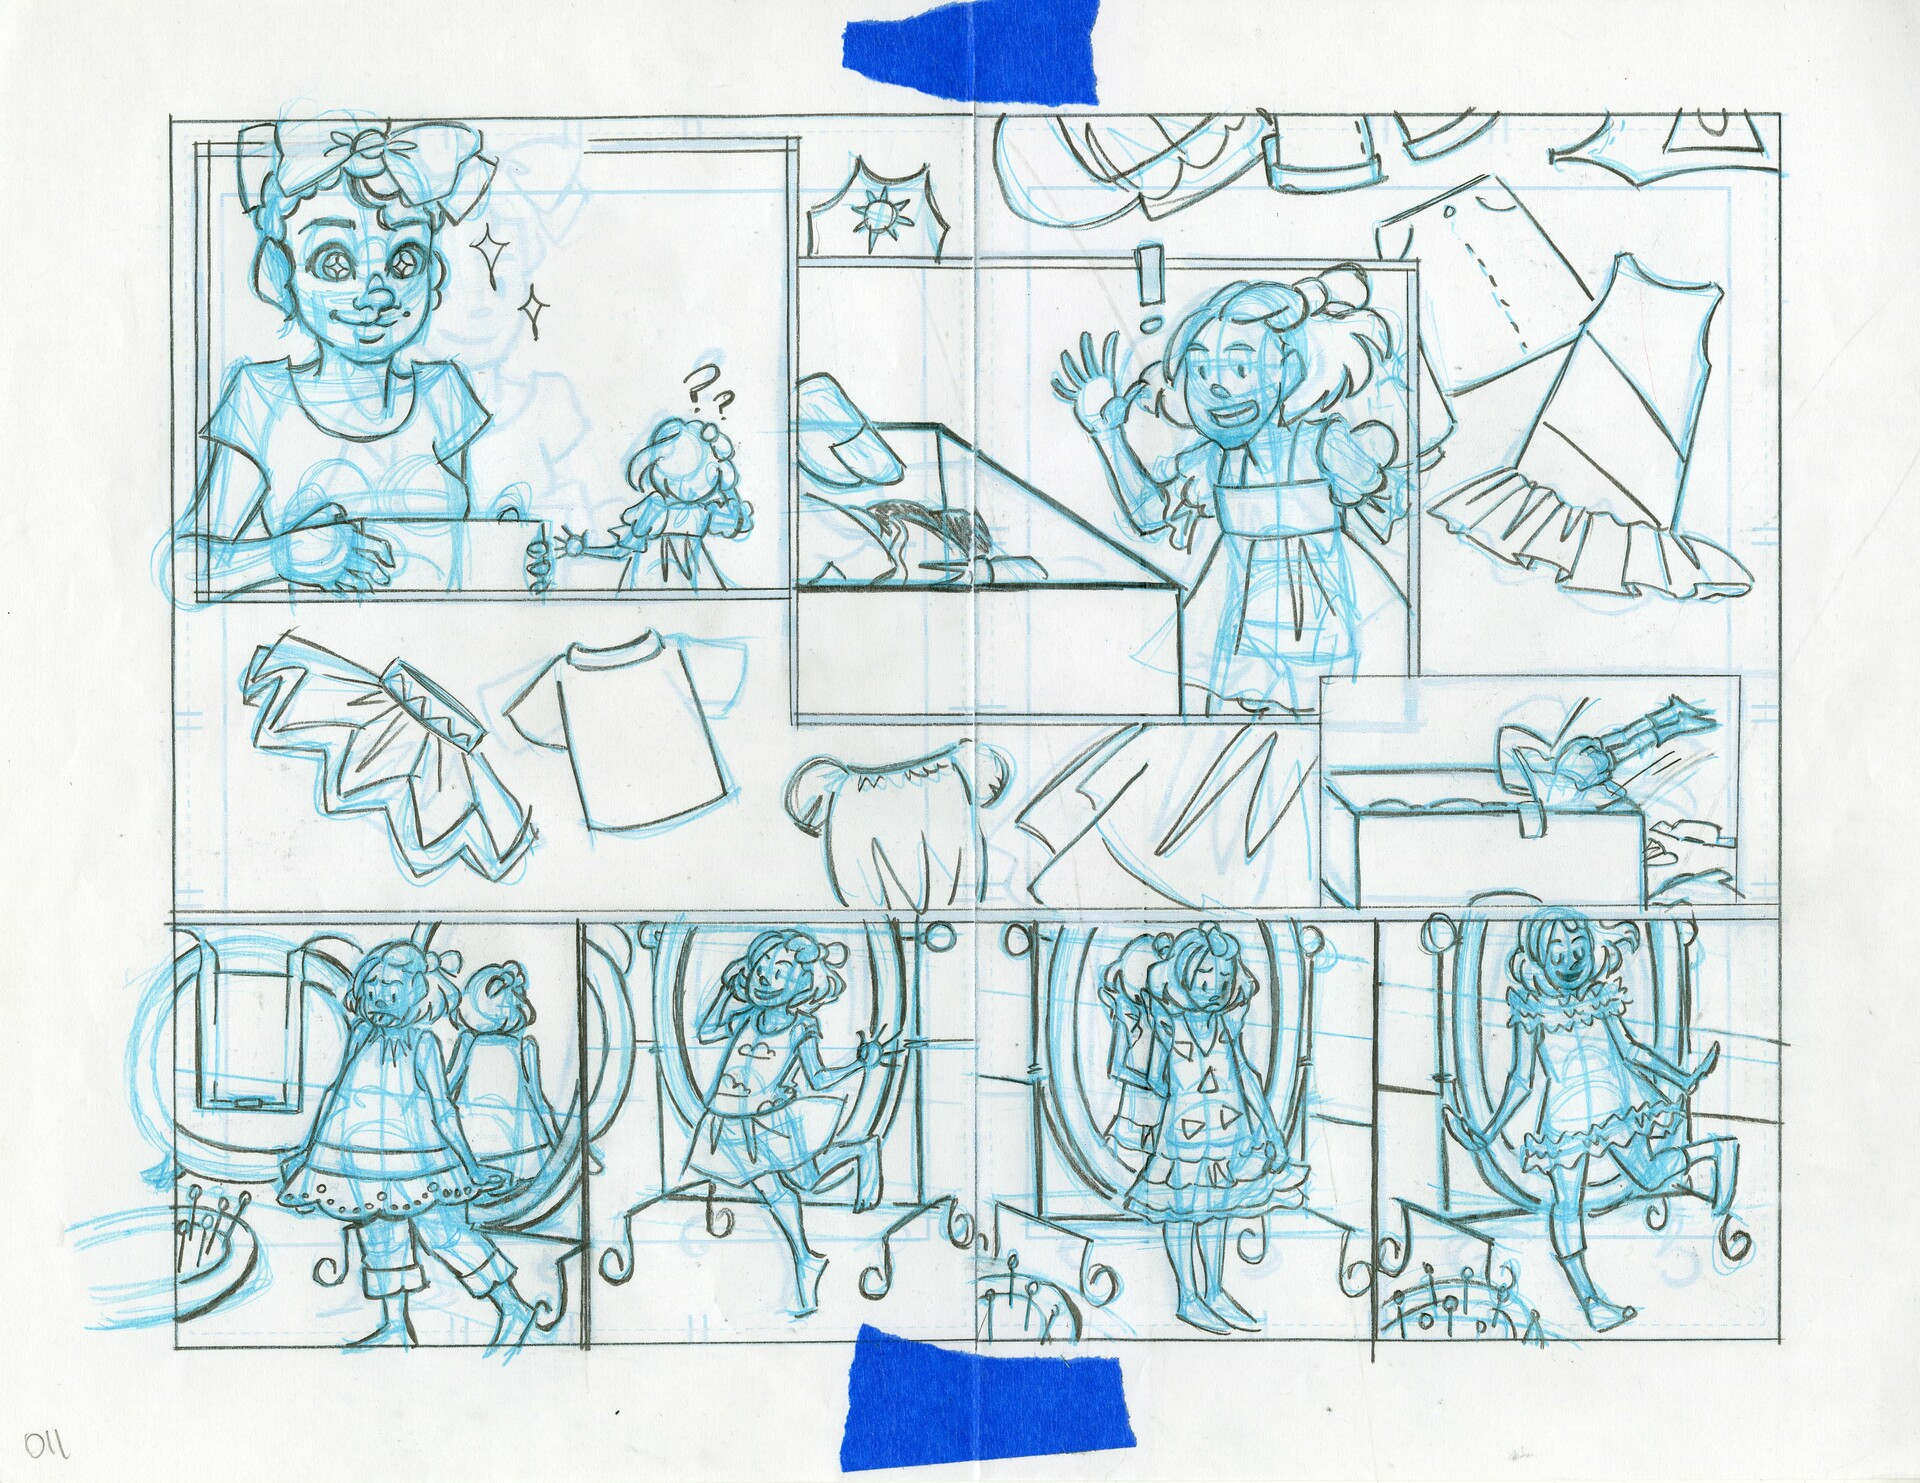 Roughs- Double Page Spread 11&12